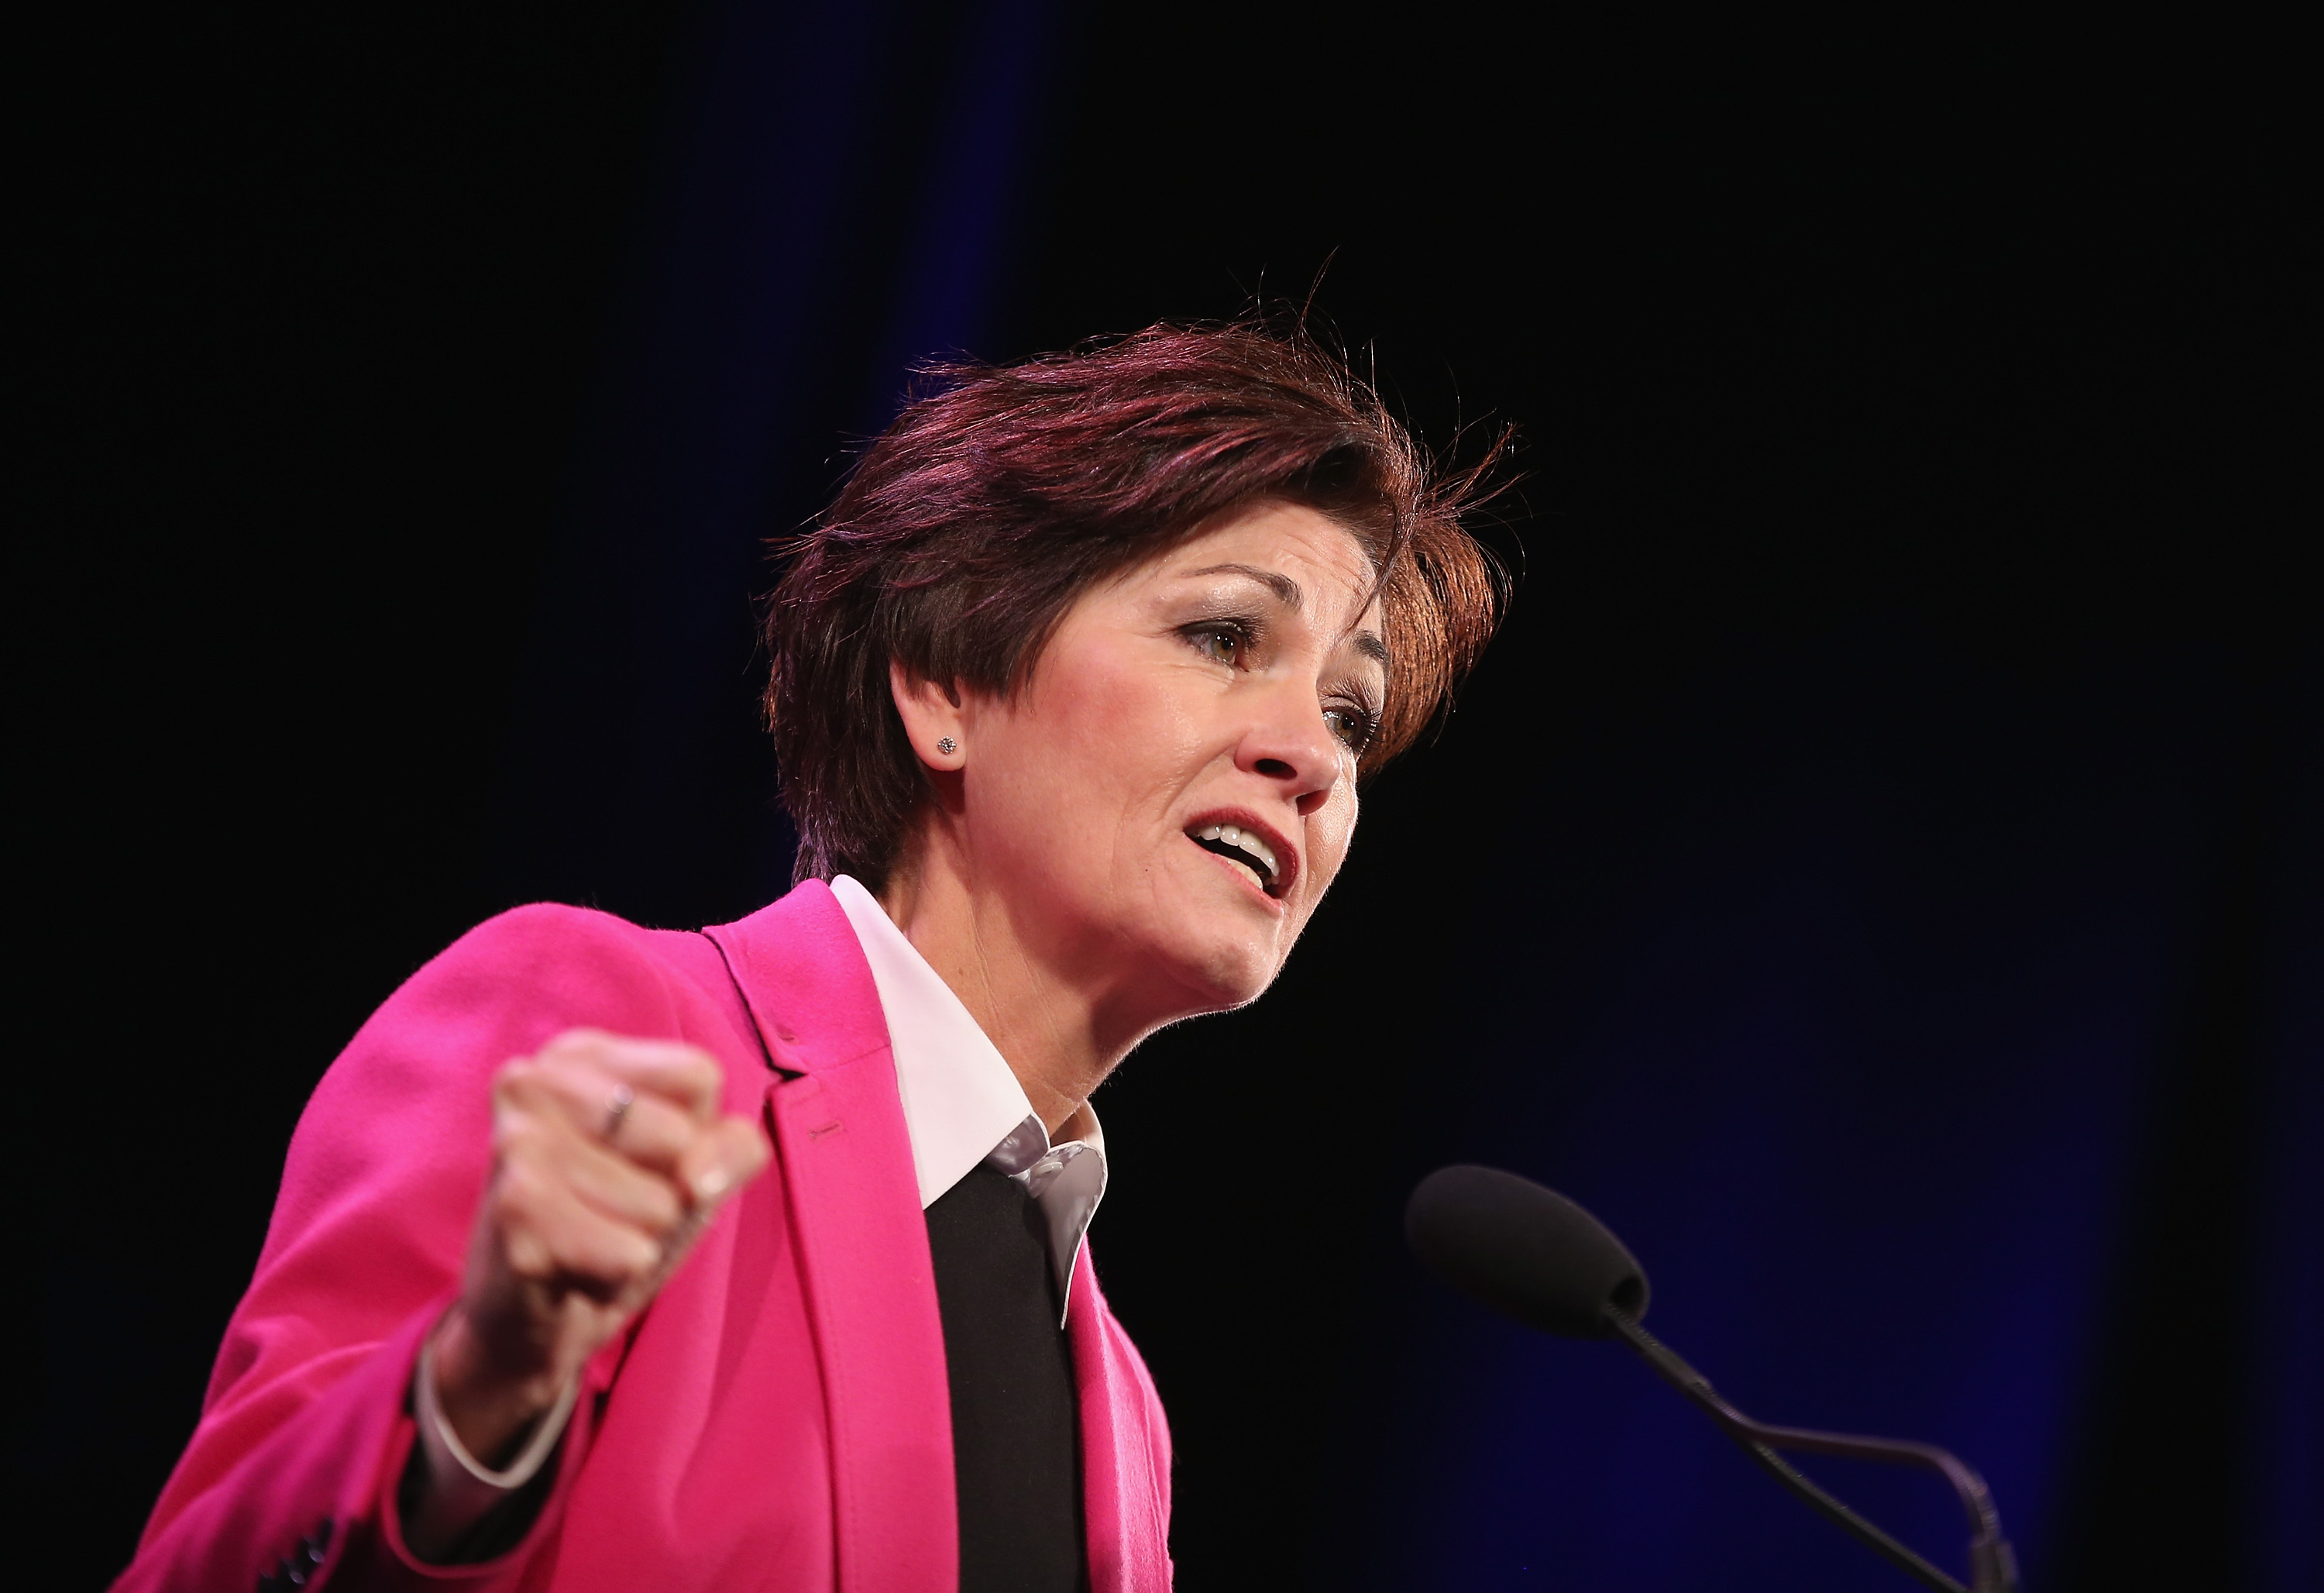 U.S.: Governor Reynolds signs law banning abortion at 6wks